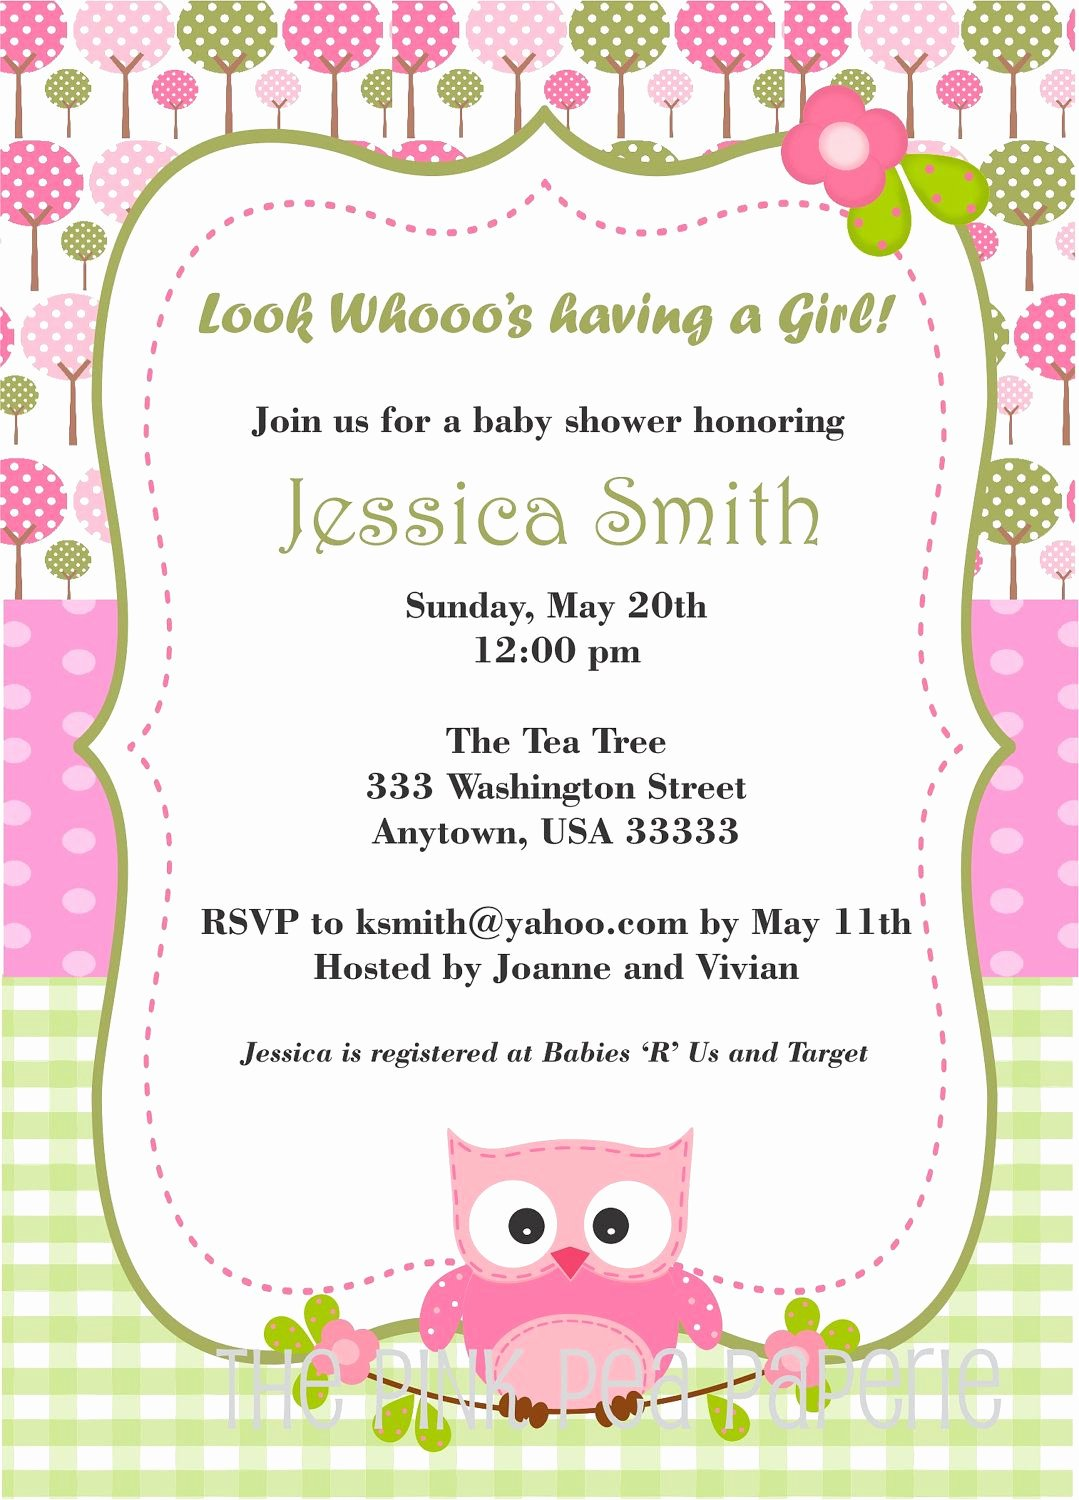 Owl Baby Shower Invitations Templates Lovely Owl Baby Shower Invitation with Pink and Green Digital